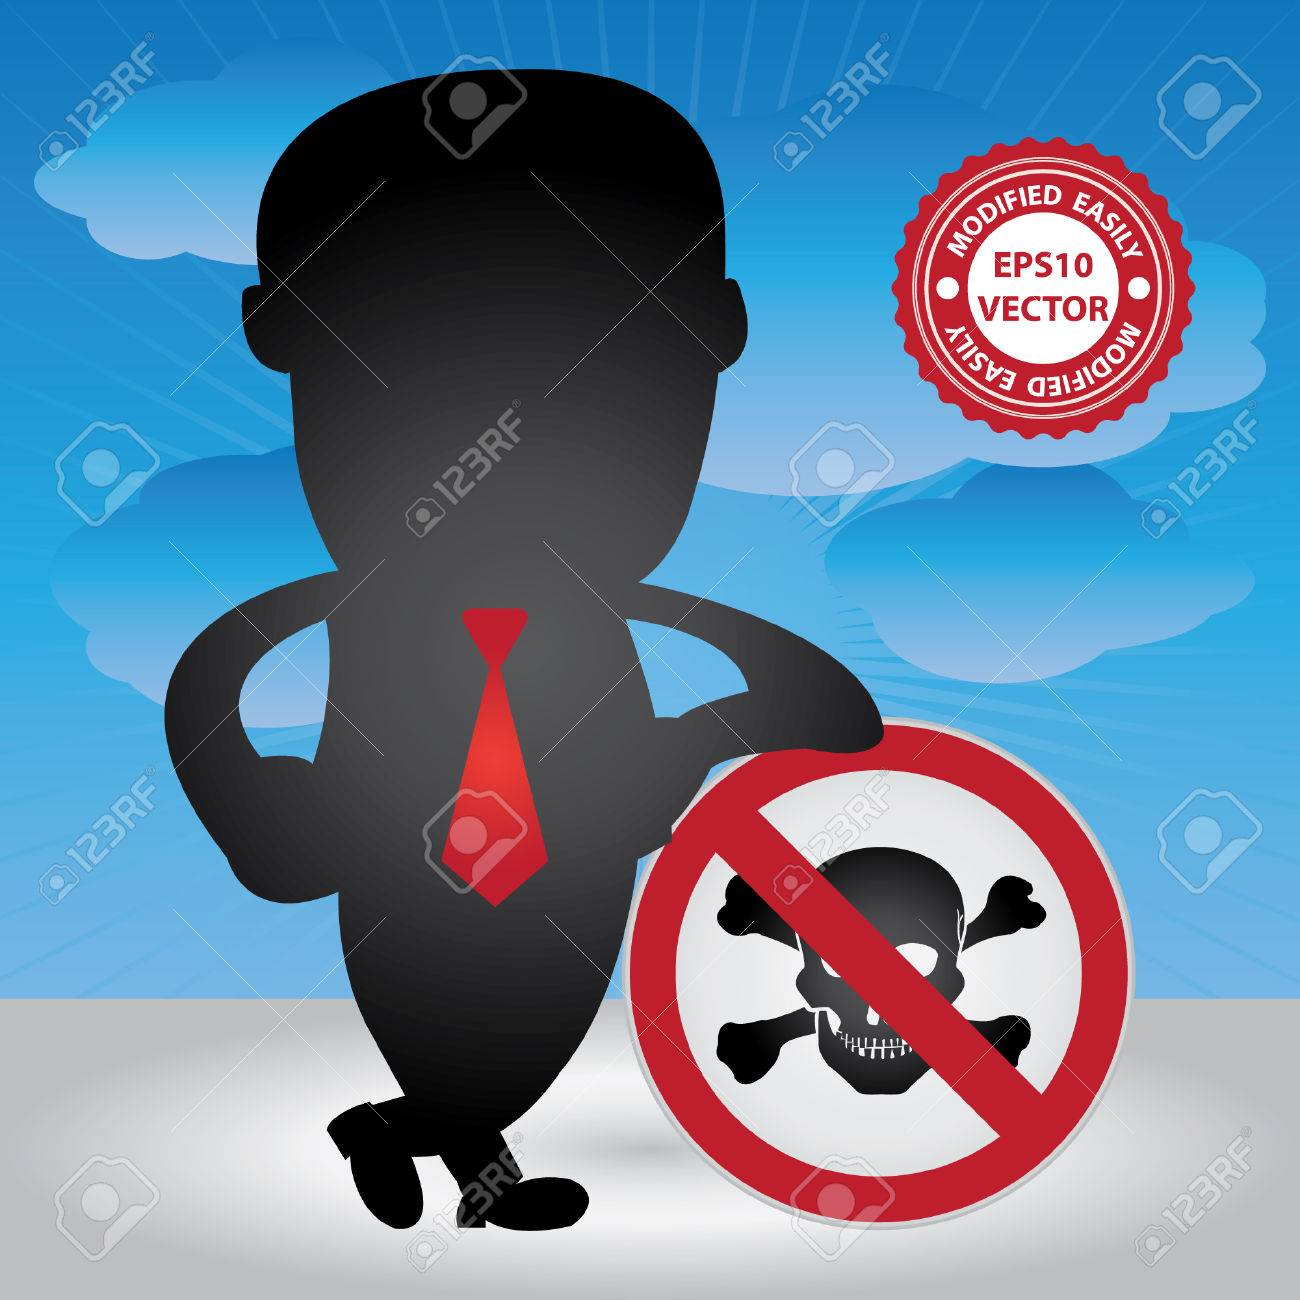 Vector, Business Management or Business Solution Concept Present By Businessman Lean Against The Danger Traffic Sign in Blue Sky Background Stock Vector - 24017143